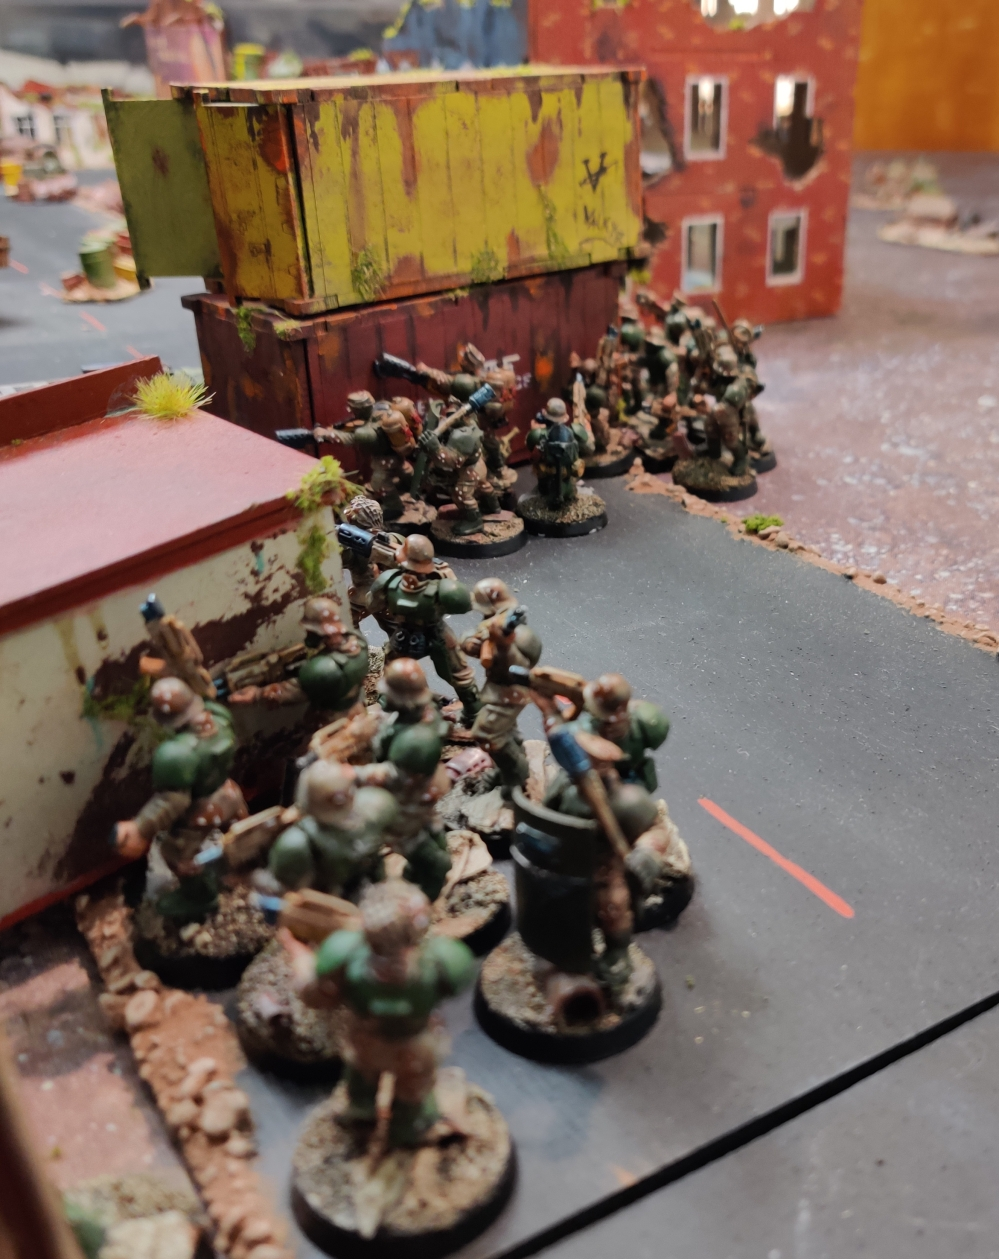 40K_Vogen_PDF_infantry_advancing_under_cover.jpg